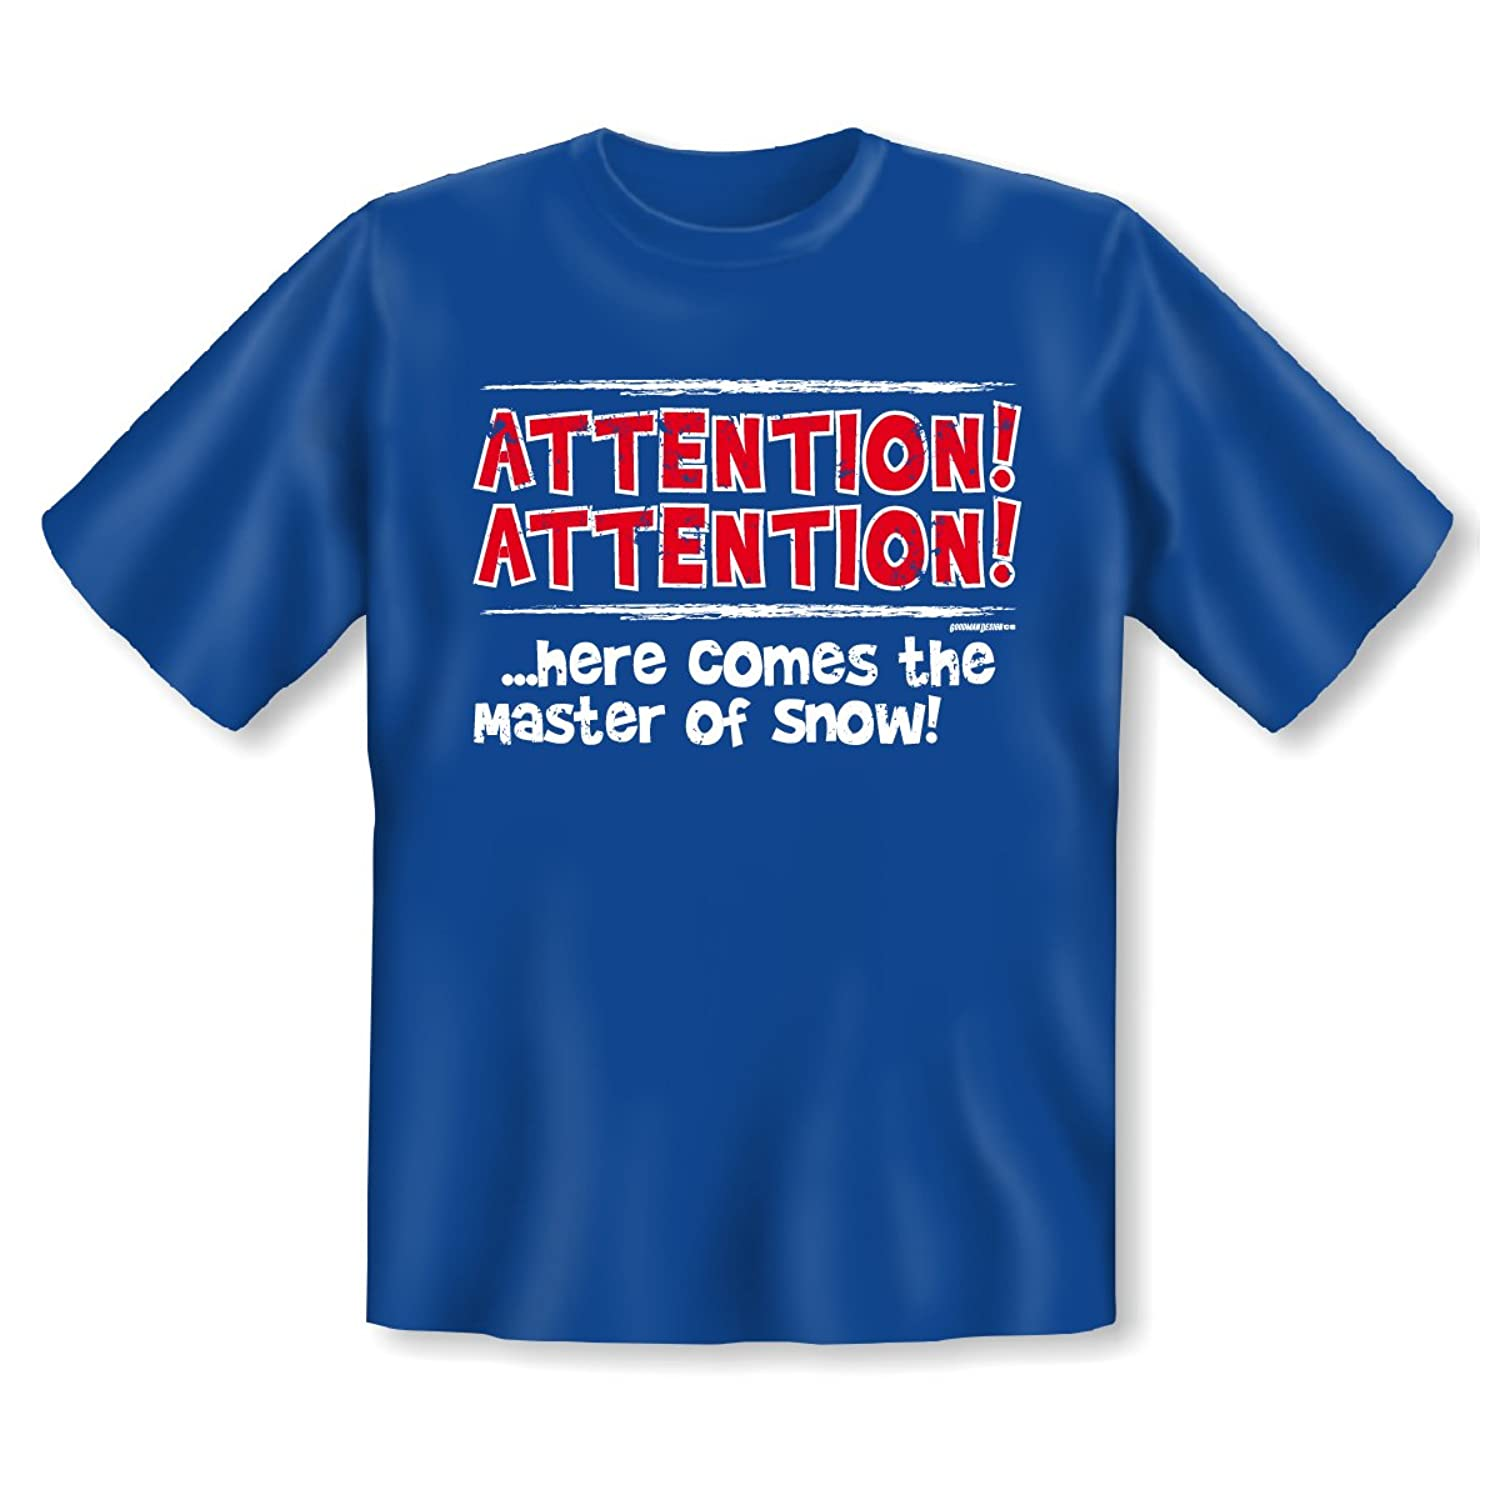 Wintersport,Apres-ski T-Shirt Goodman Design Gr: Farbe: royal-blau : ATTENTION! ATTENTION! here comes the master....